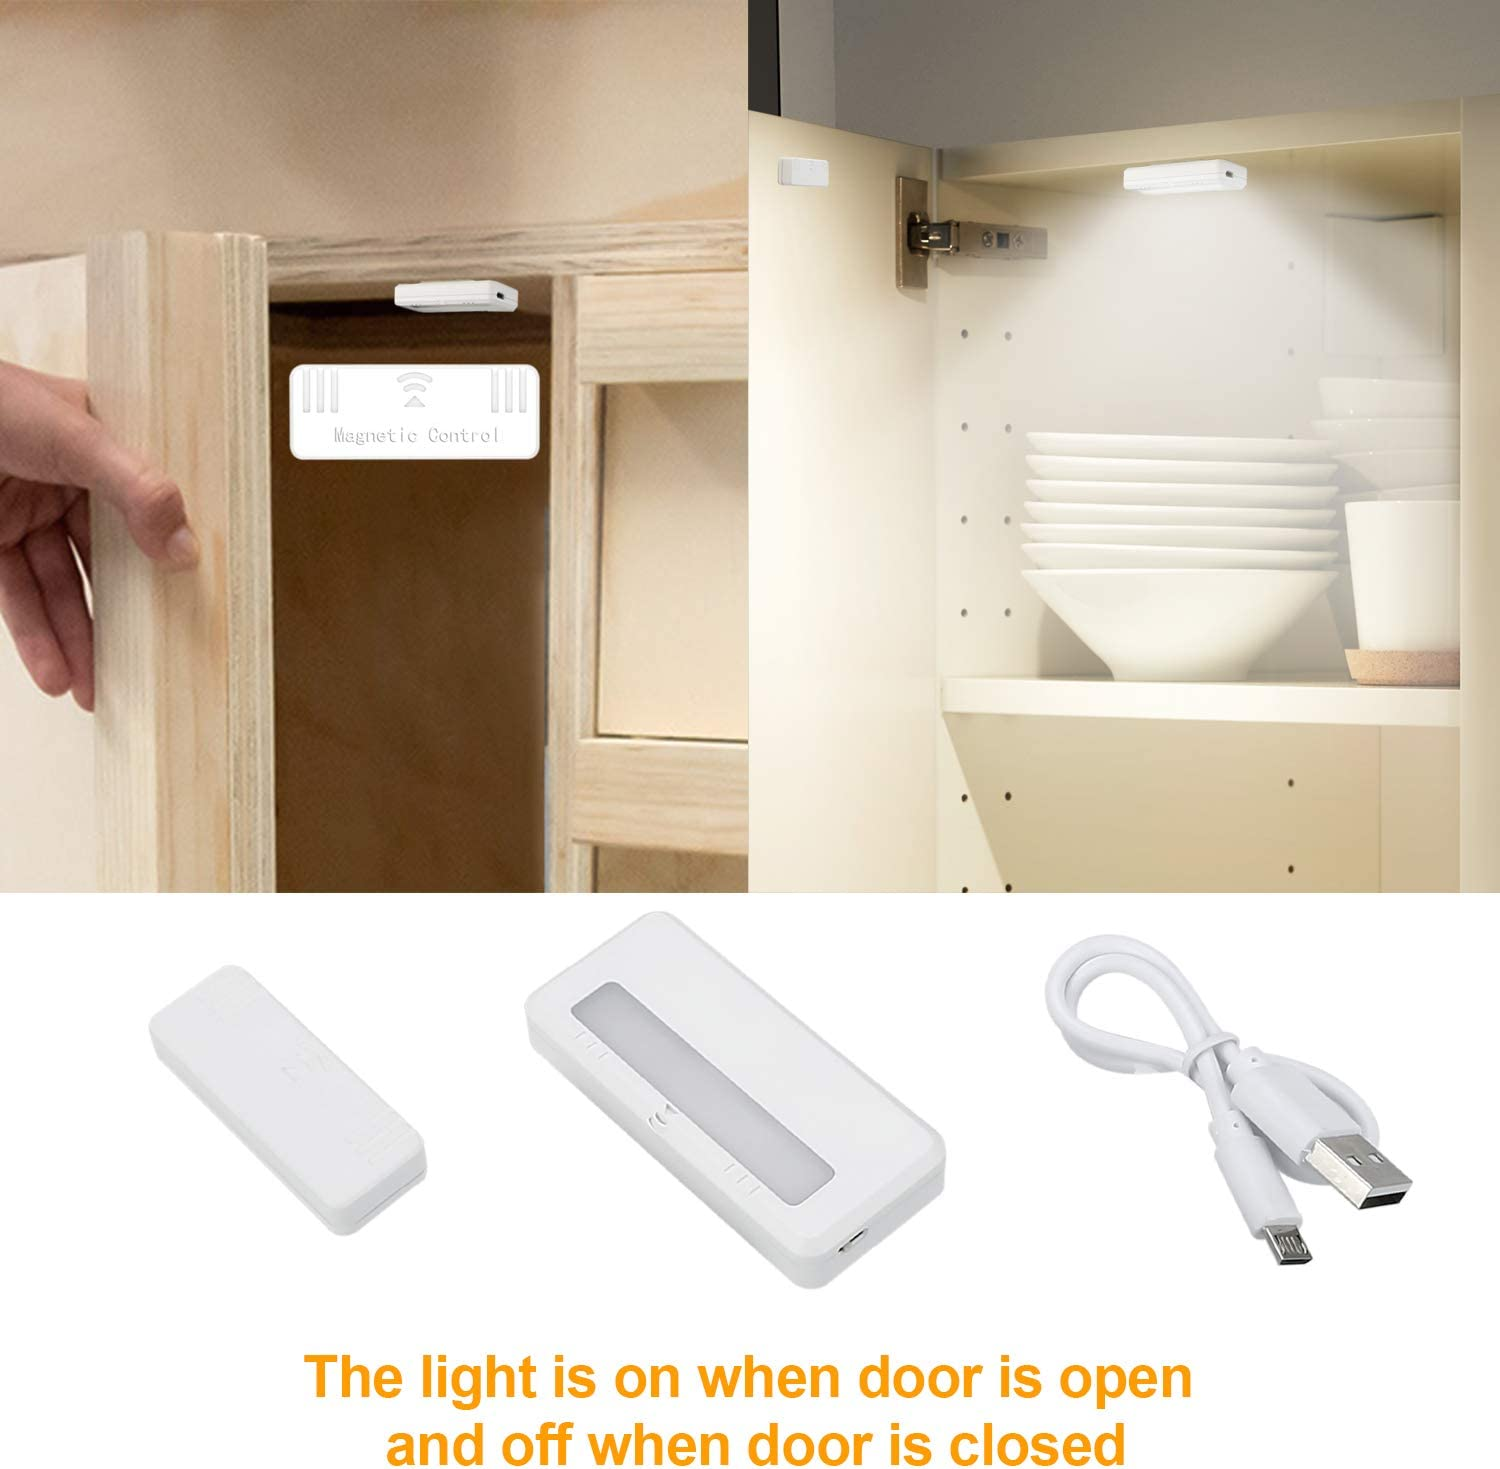 AMANEER Rechargeable Portable Motion Sensor Light Magnetic Removable Puck Lights Small LED Flashlight Mini Night Lights for Wardrobe Counter Closet Storage Boxes Bedside Table Drawer Lighting 2 Pack